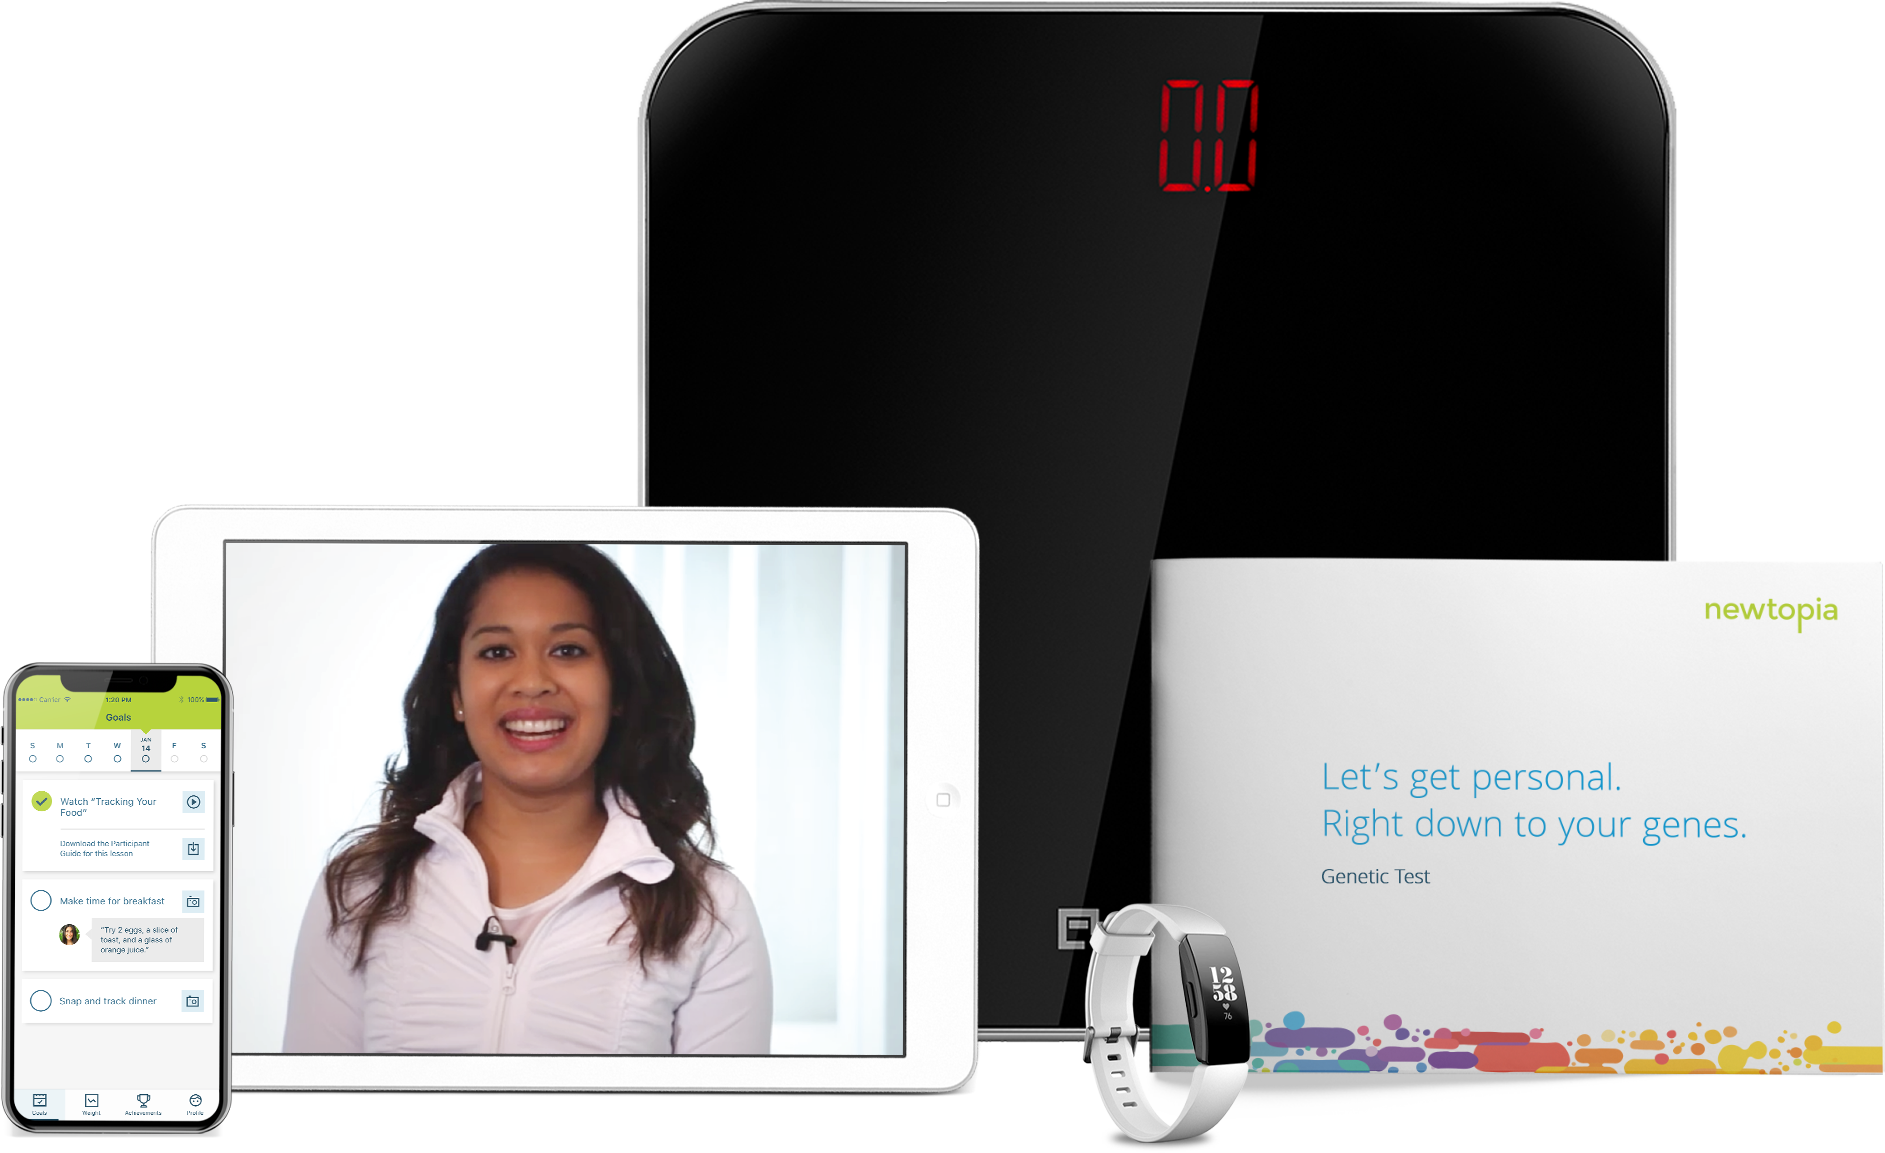 Newtopia scale, tablet, smart phone, smart watch, and welcome package